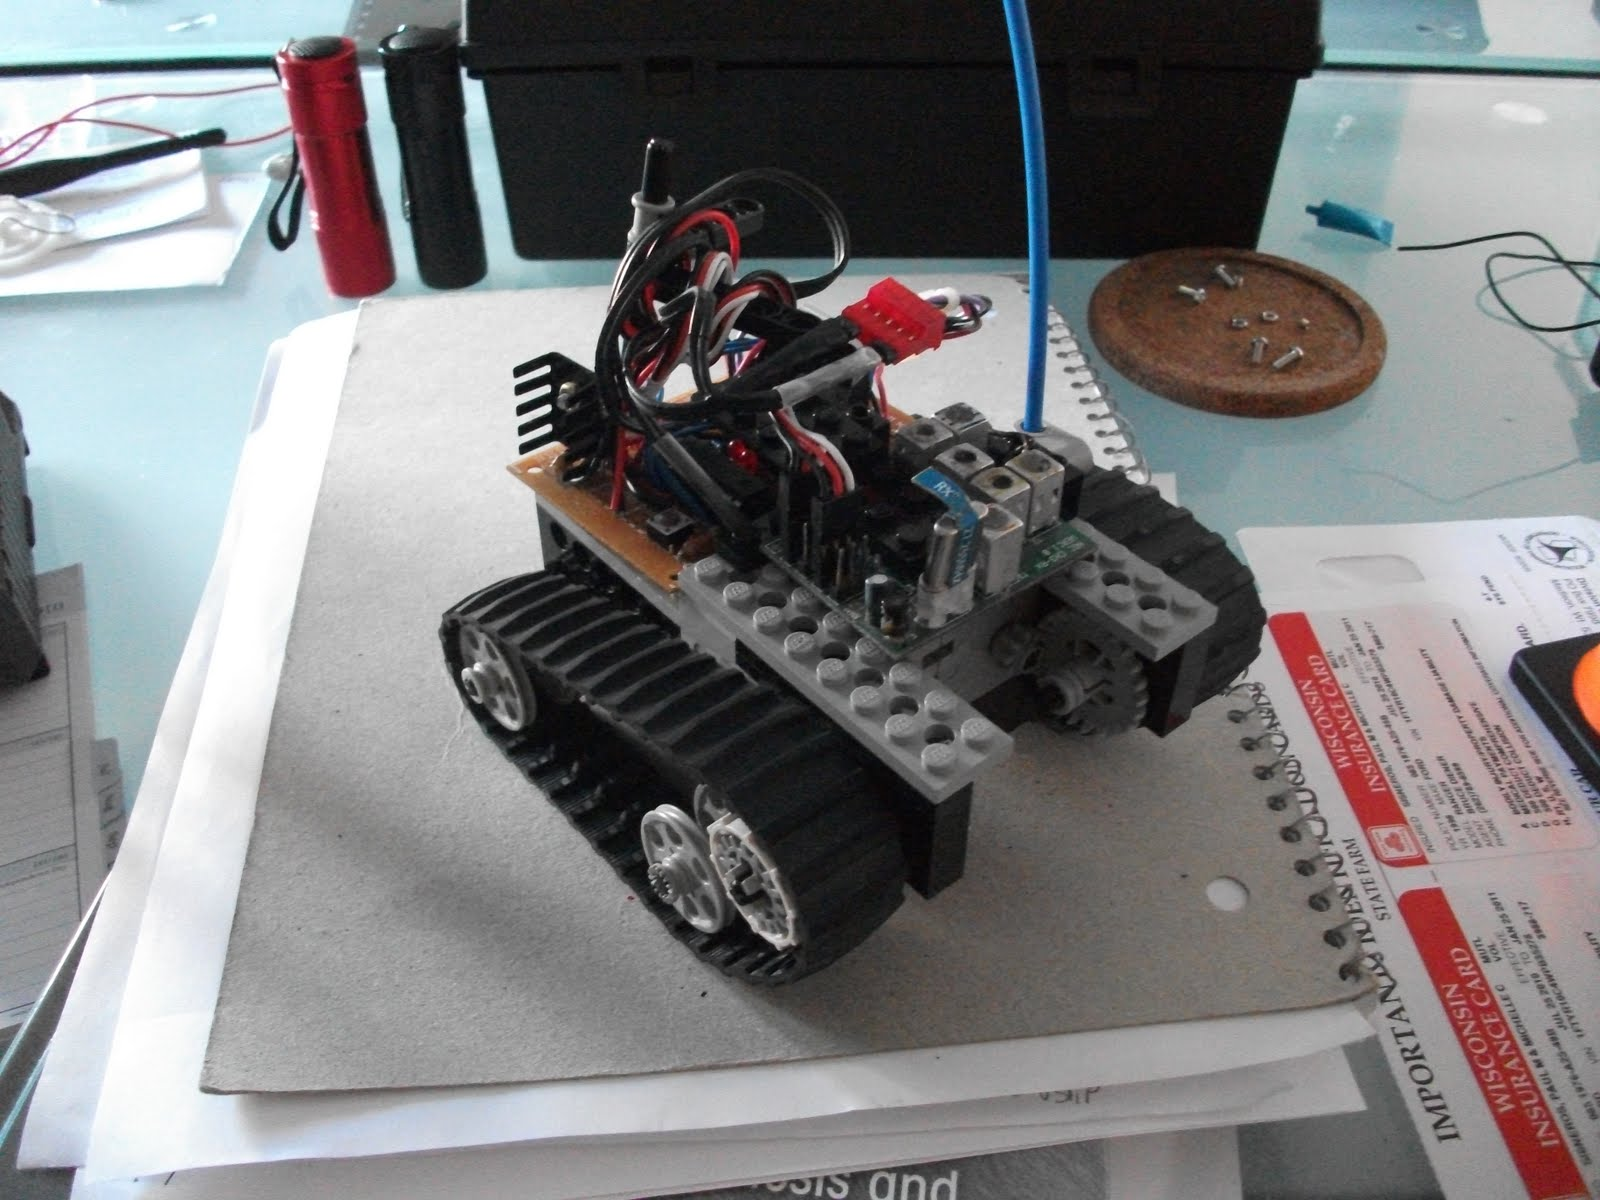 Paul Makes Things The Tank Drive Rc Motor Driver Car Wiring Diagram 2ch Am Reciver Next Step In This Project Is A More Solid Version Im Working On Schematic To Create An Actual Board Ive Built Gearbox And I Plan Make